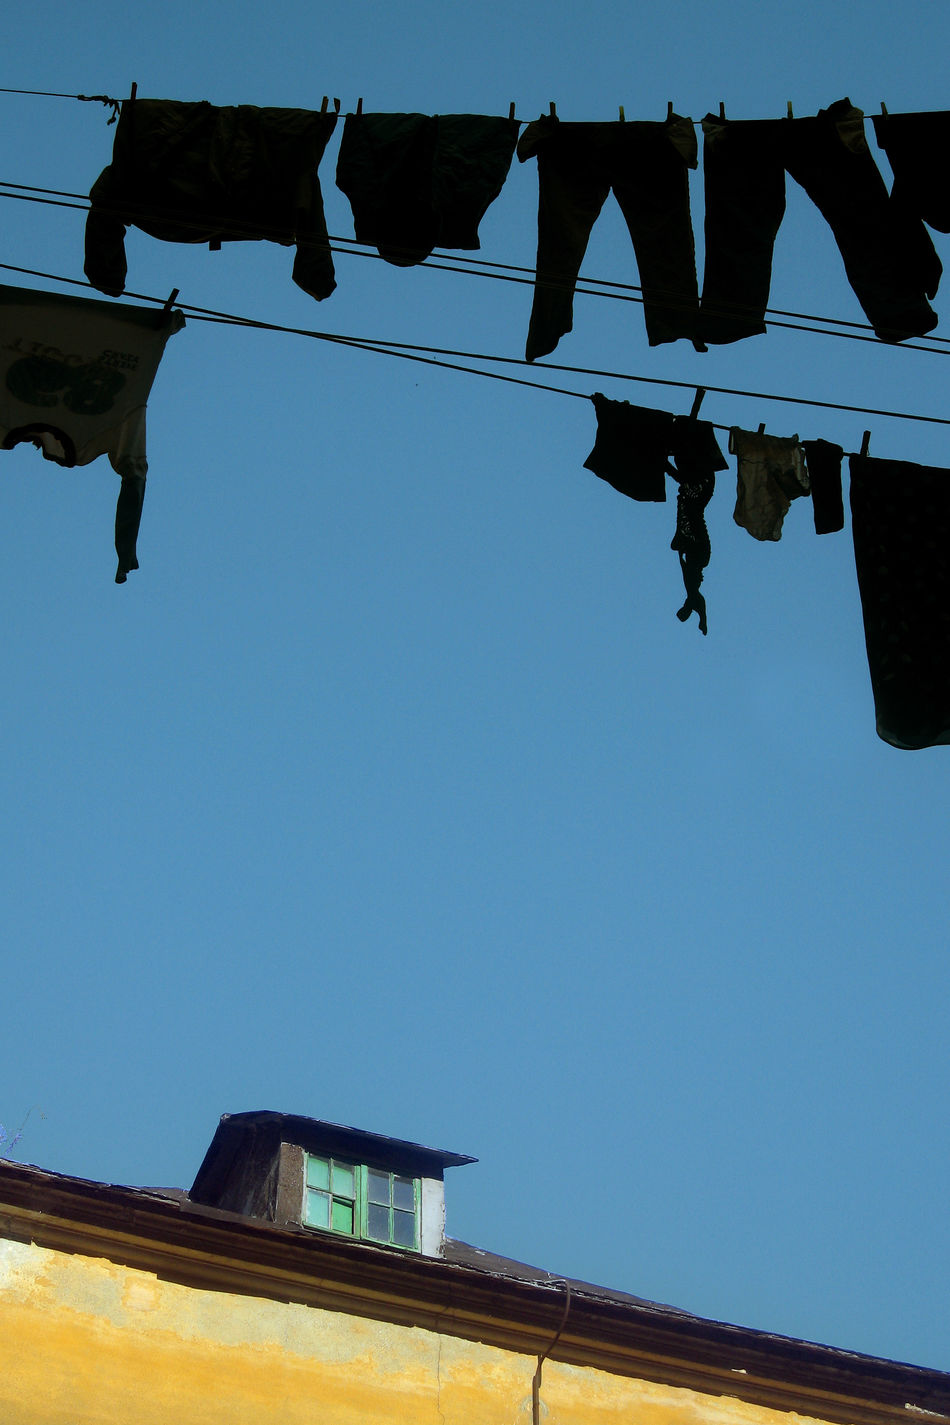 Hanging laundry shandes Architecture Blue Building Clear Sky Day EyeEm Best Shots EyeEm Gallery EyeEmBestPics Garrett Hanging Horizon Over Water Laundry Laundry Day Laundry Hanging Laundry Line Low Angle View No People Outdoors Roof Rooftop Rooftops Sky The Week On EyeEem